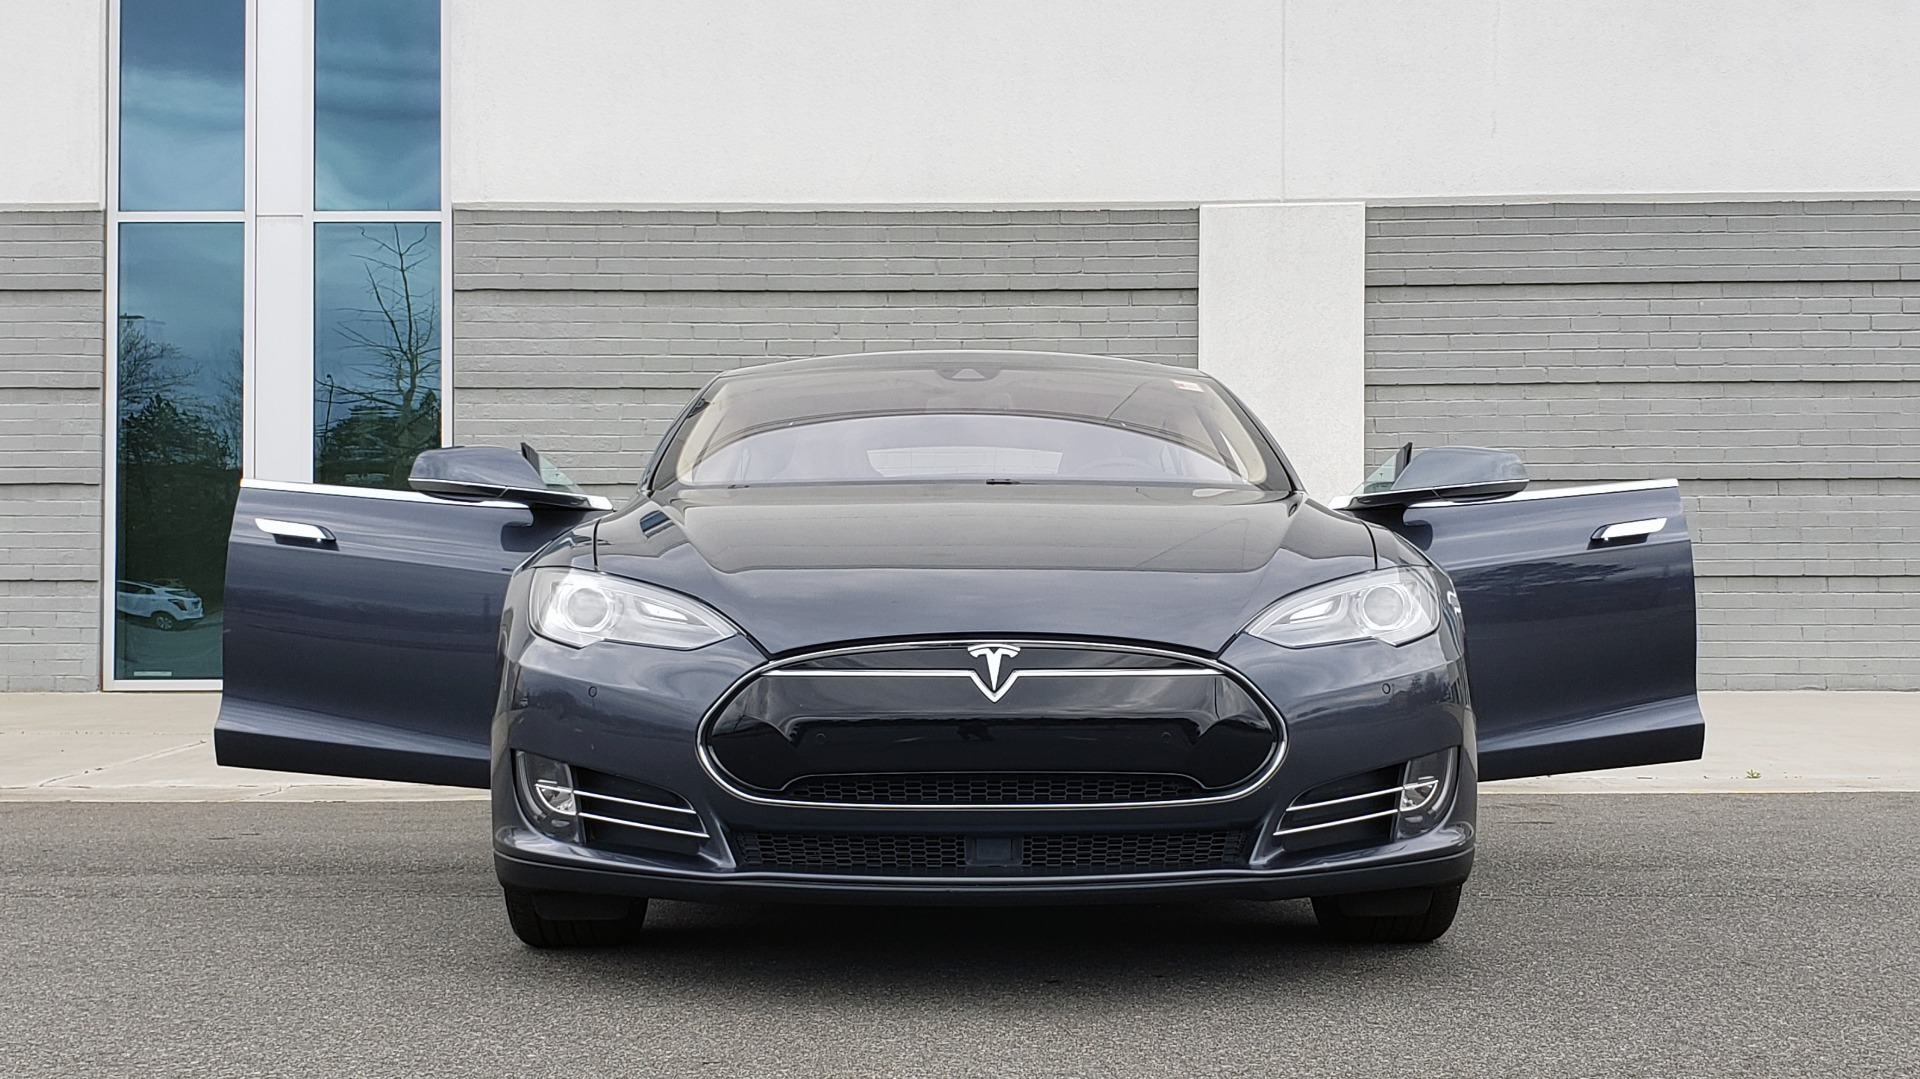 Used 2014 Tesla MODEL S 60 kWh BATTERY / TECH / NAV / SUBZERO / SUNROOF / REARVIEW for sale Sold at Formula Imports in Charlotte NC 28227 18